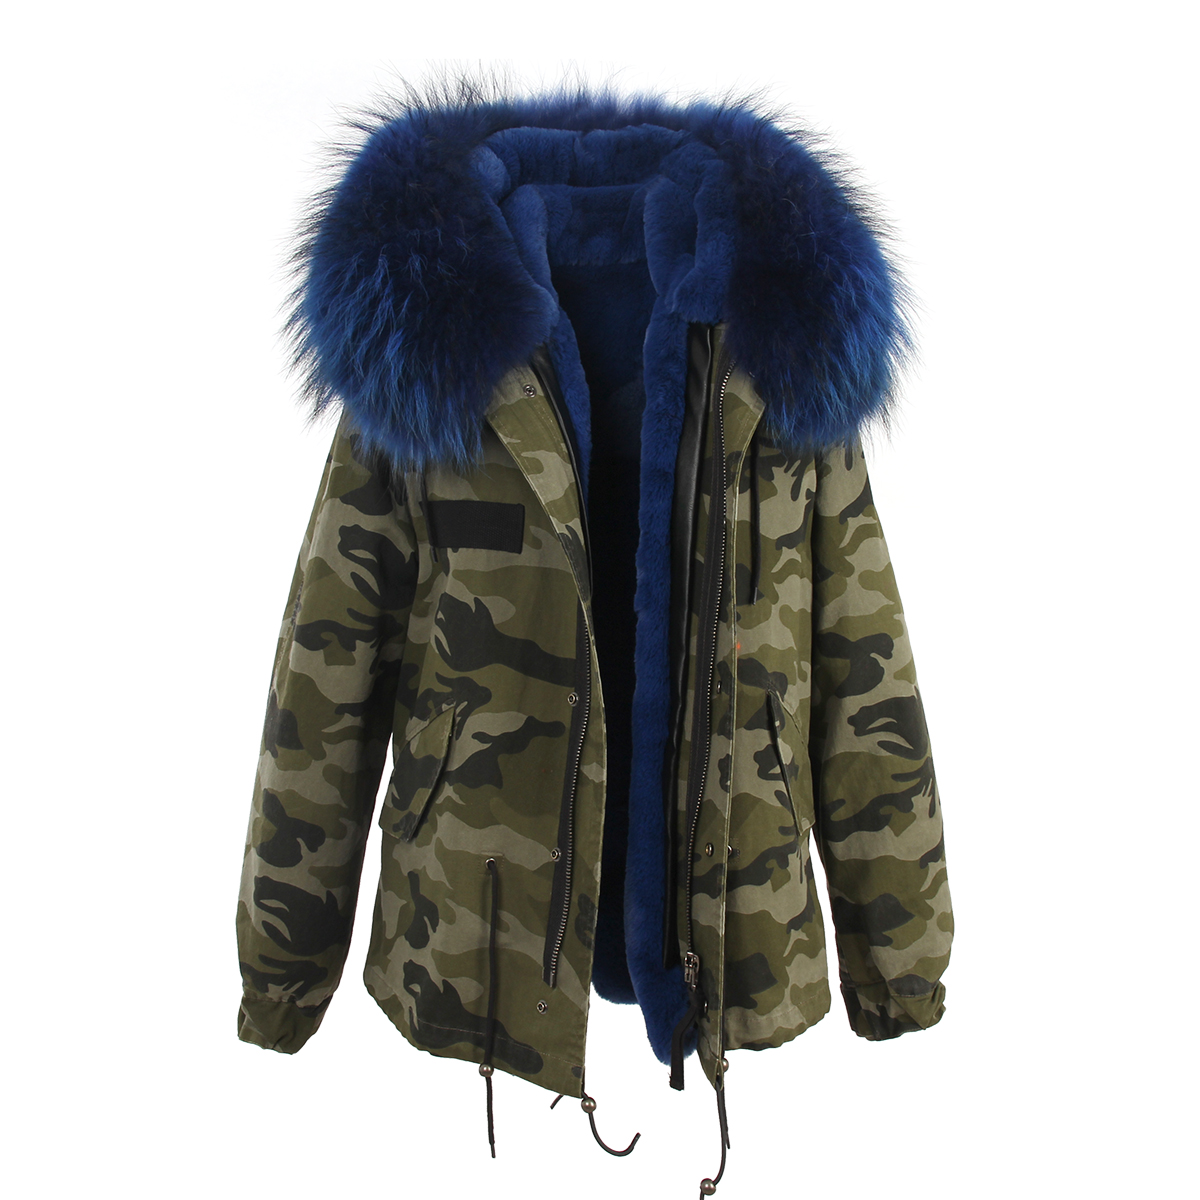 ff3d7dd233d2 J-Z-H 2017 winter jacket women's camouflage real raccoon fur collar coat  detachable warm faux fur liner parkas hoody outwear